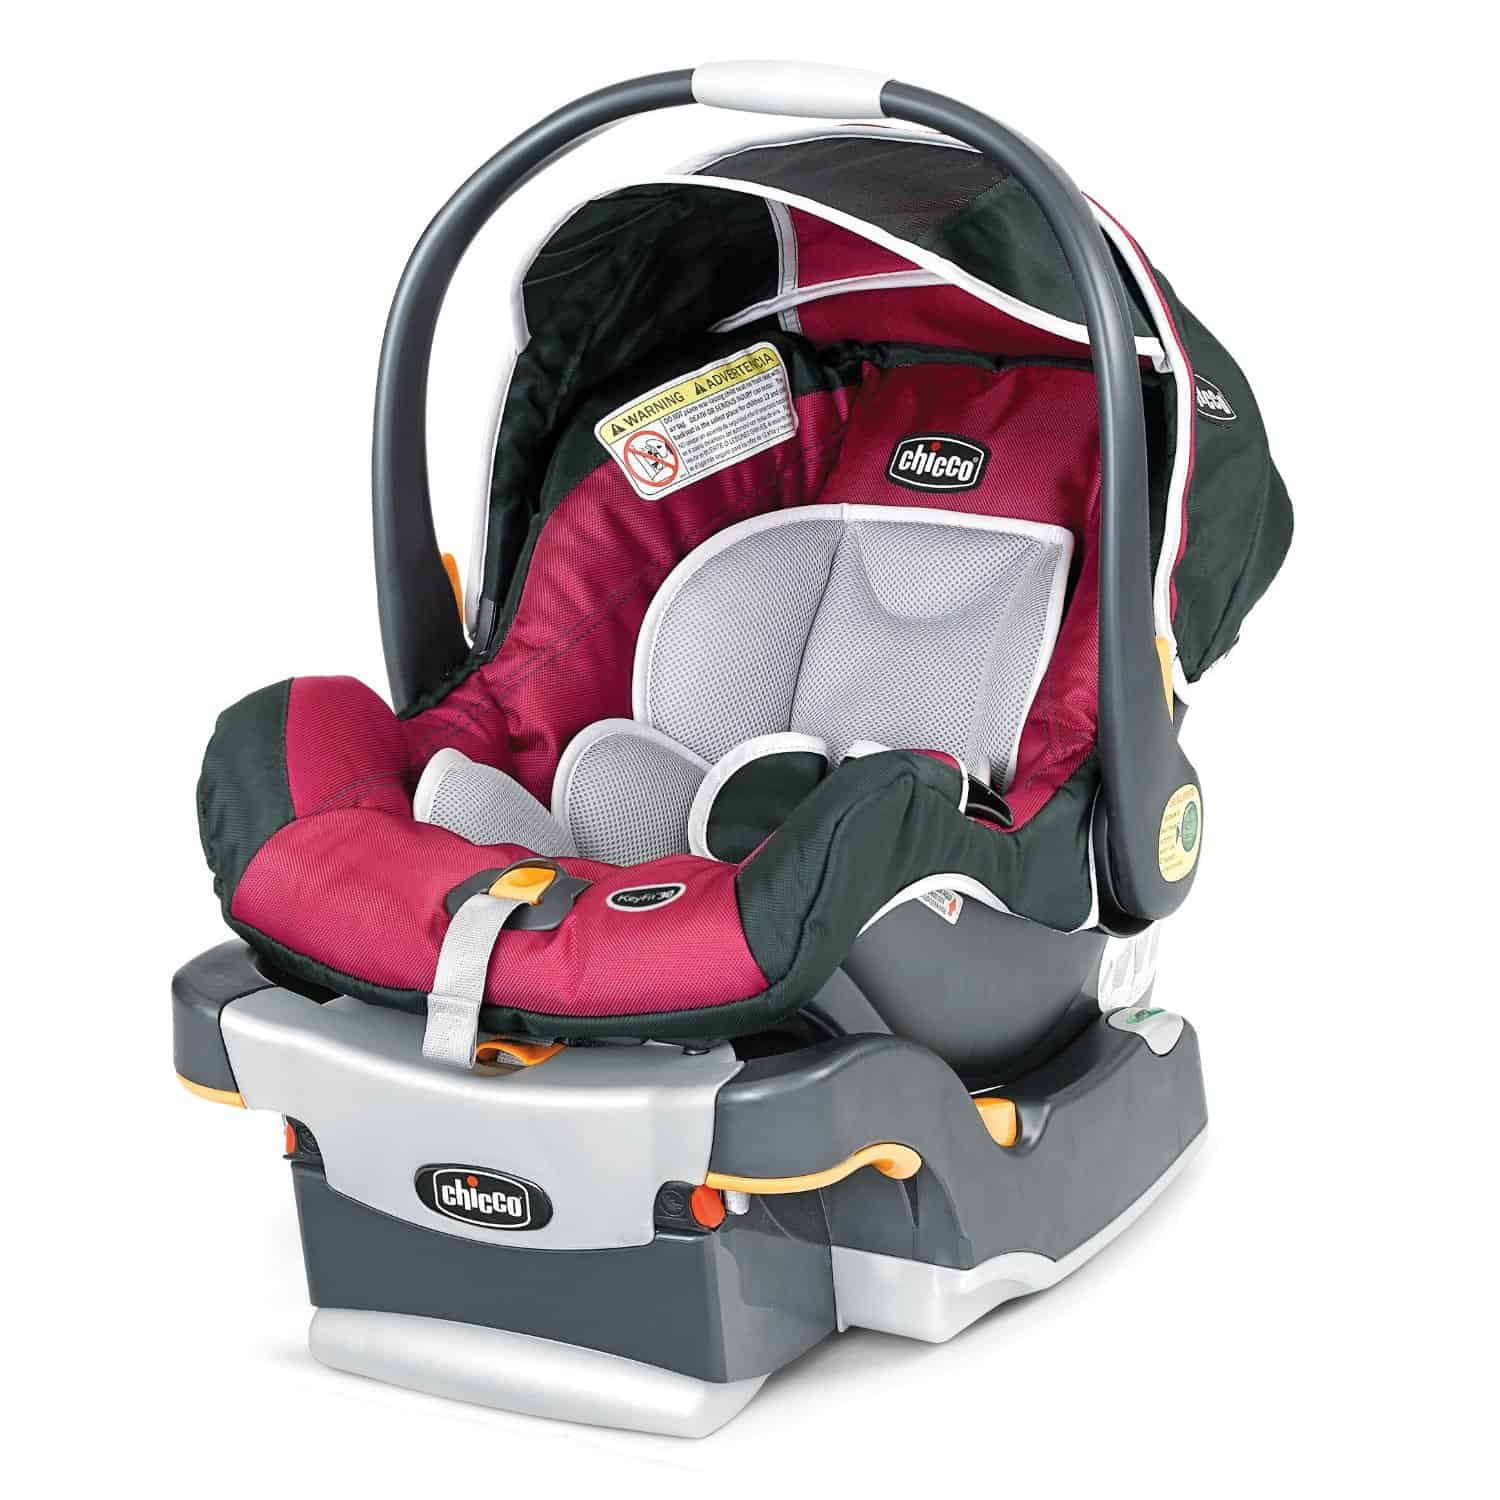 Infant Car Seat shopping? We've got your